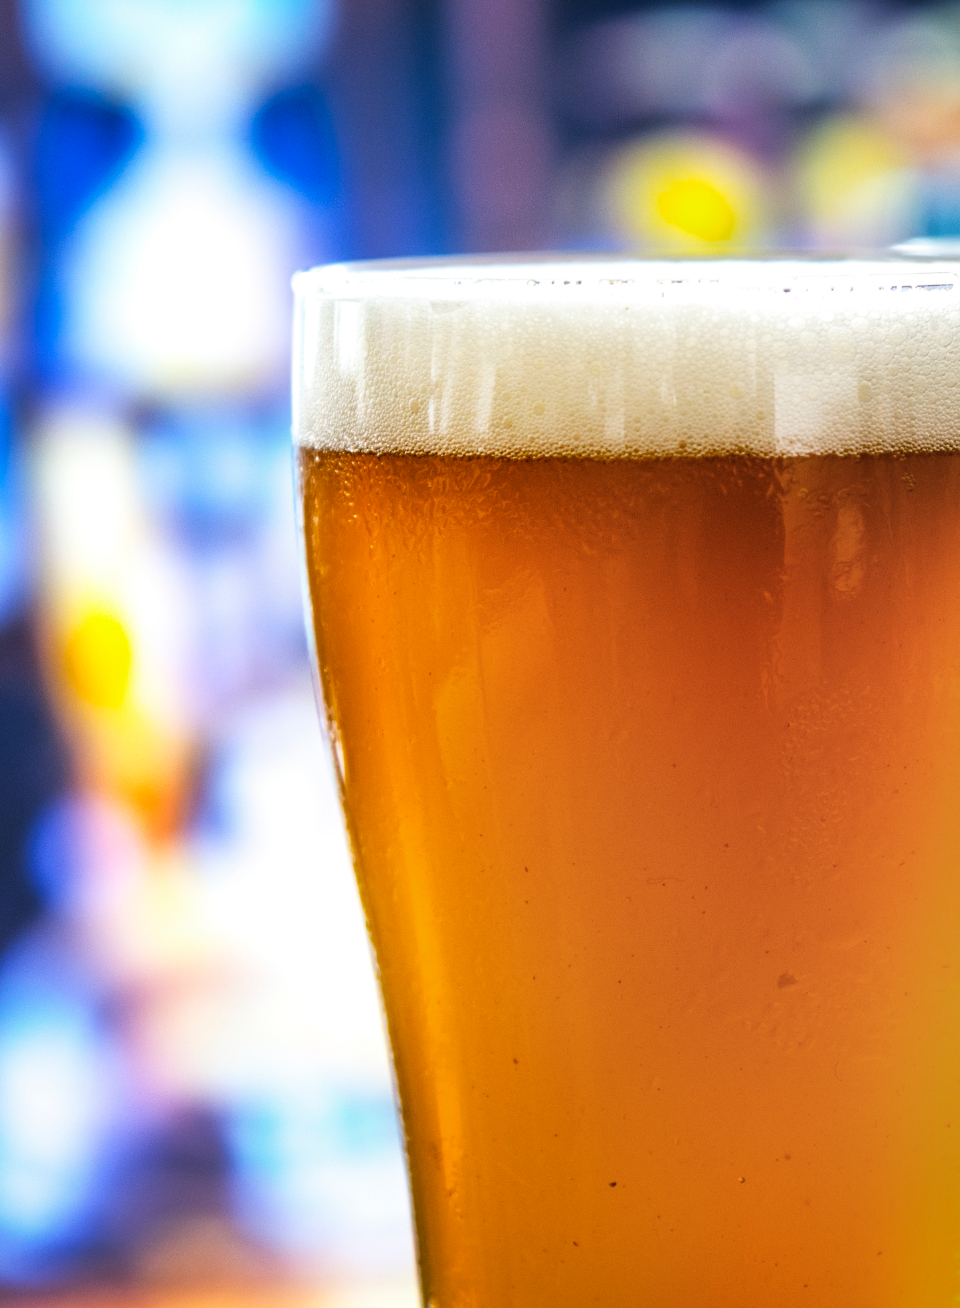 alcohol alcoholism ale background bar beer beverage brewed brewery bubble celebration close up cold cold drink draft drink drinking drunk foam glass hangout hops lager light liquid macro oktoberfest party pint porter pub refreshment sum